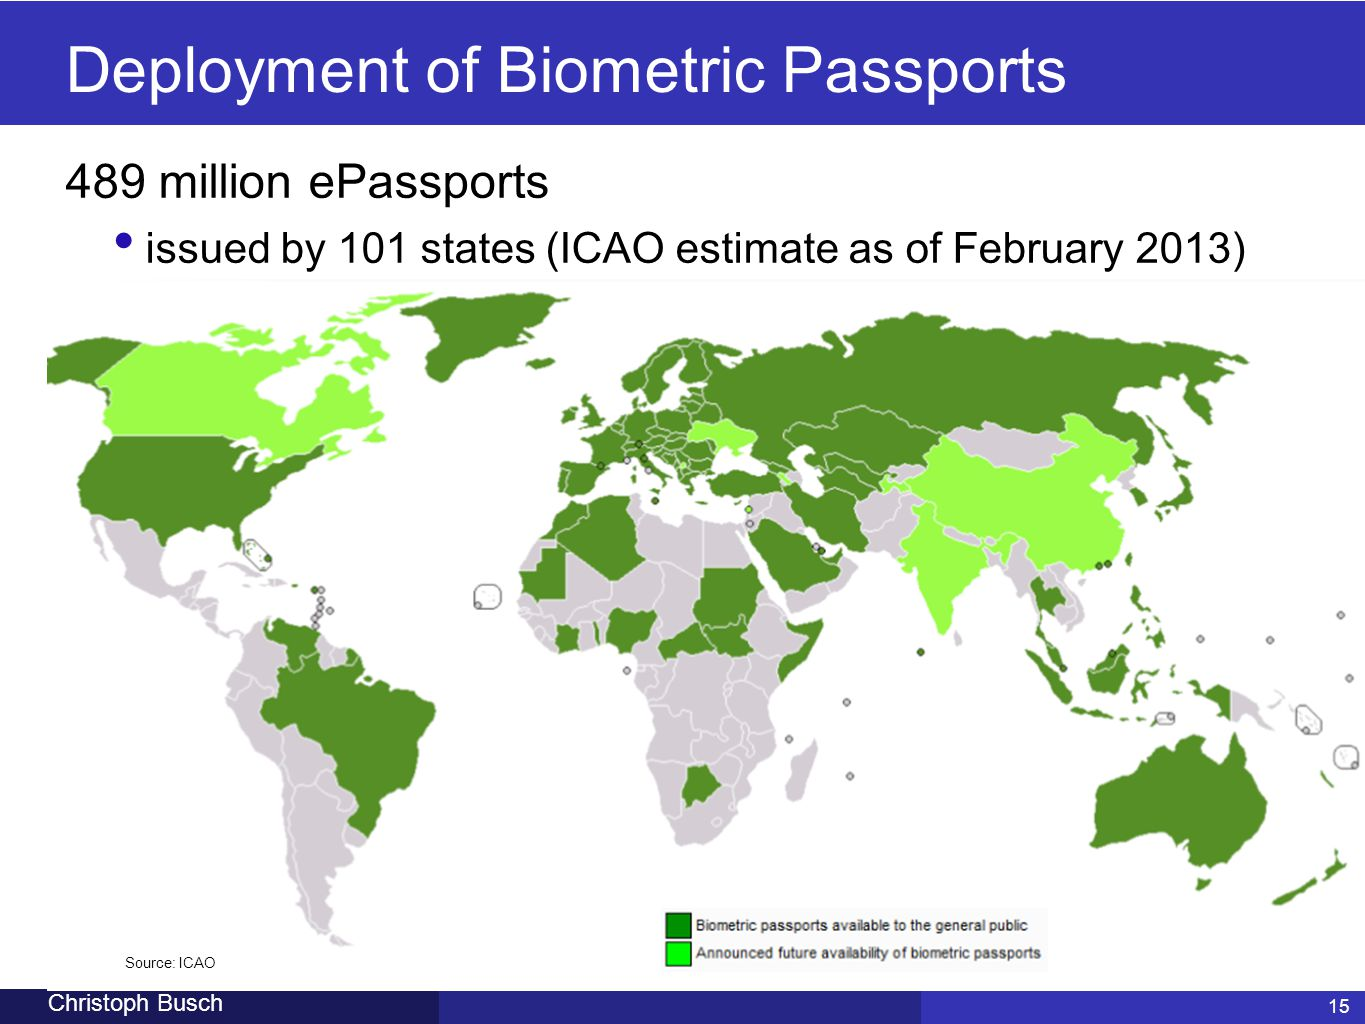 15 Christoph Busch Deployment of Biometric Passports 489 million ePassports issued by 101 states (ICAO estimate as of February 2013) 15 Source: ICAO